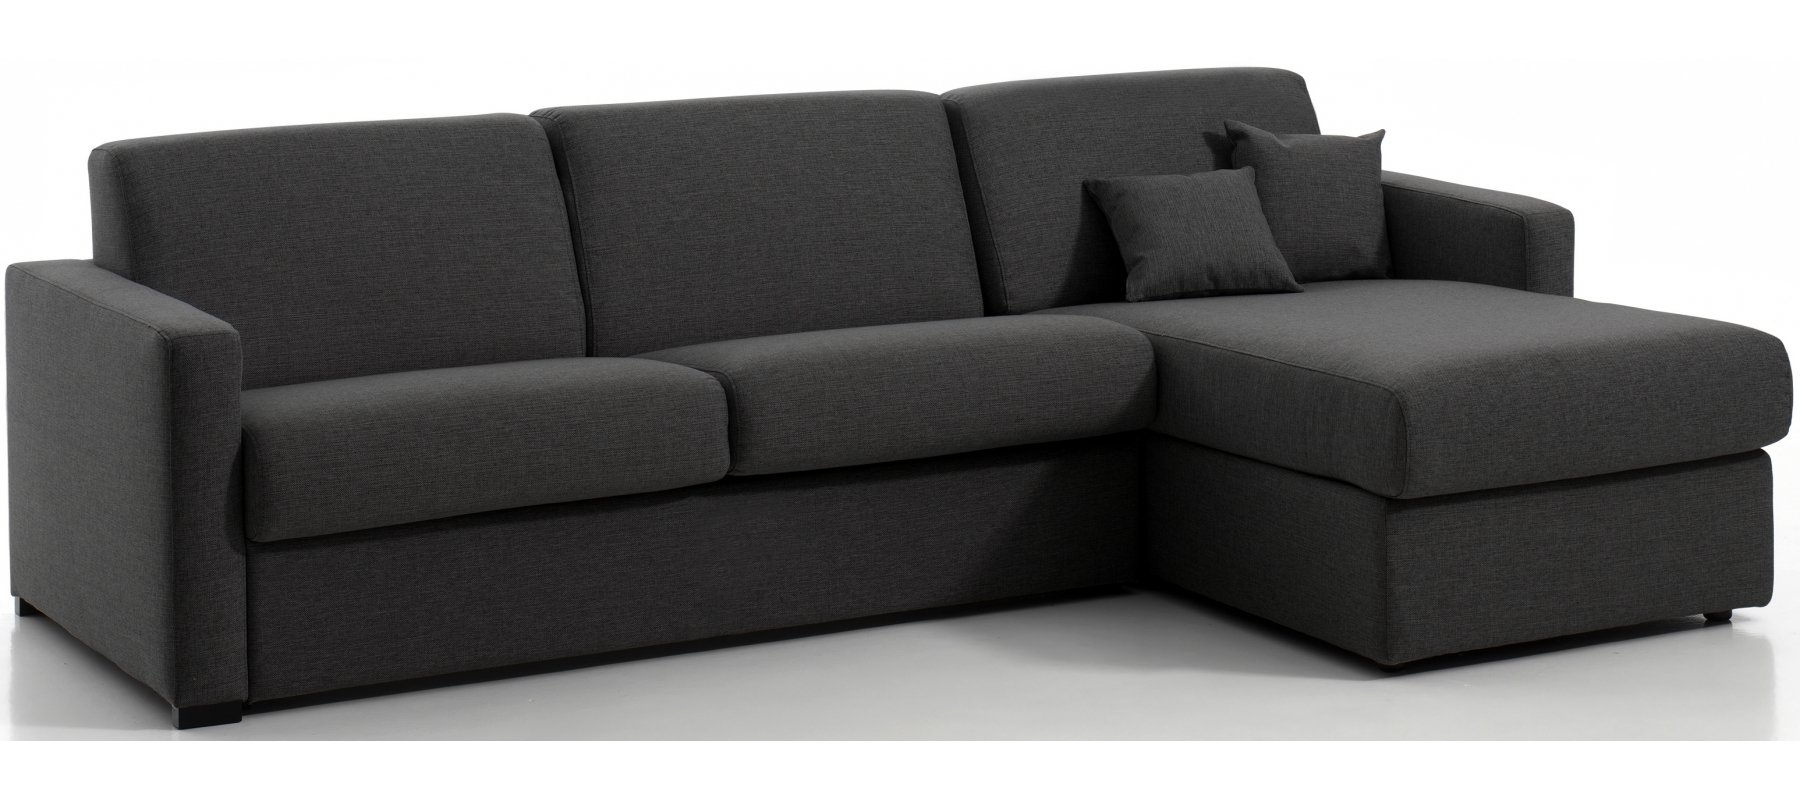 MANOSQUE - Largeur 268 cm - Canapé d'angle convertible - Méridienne réversible - Couchage 140 cm